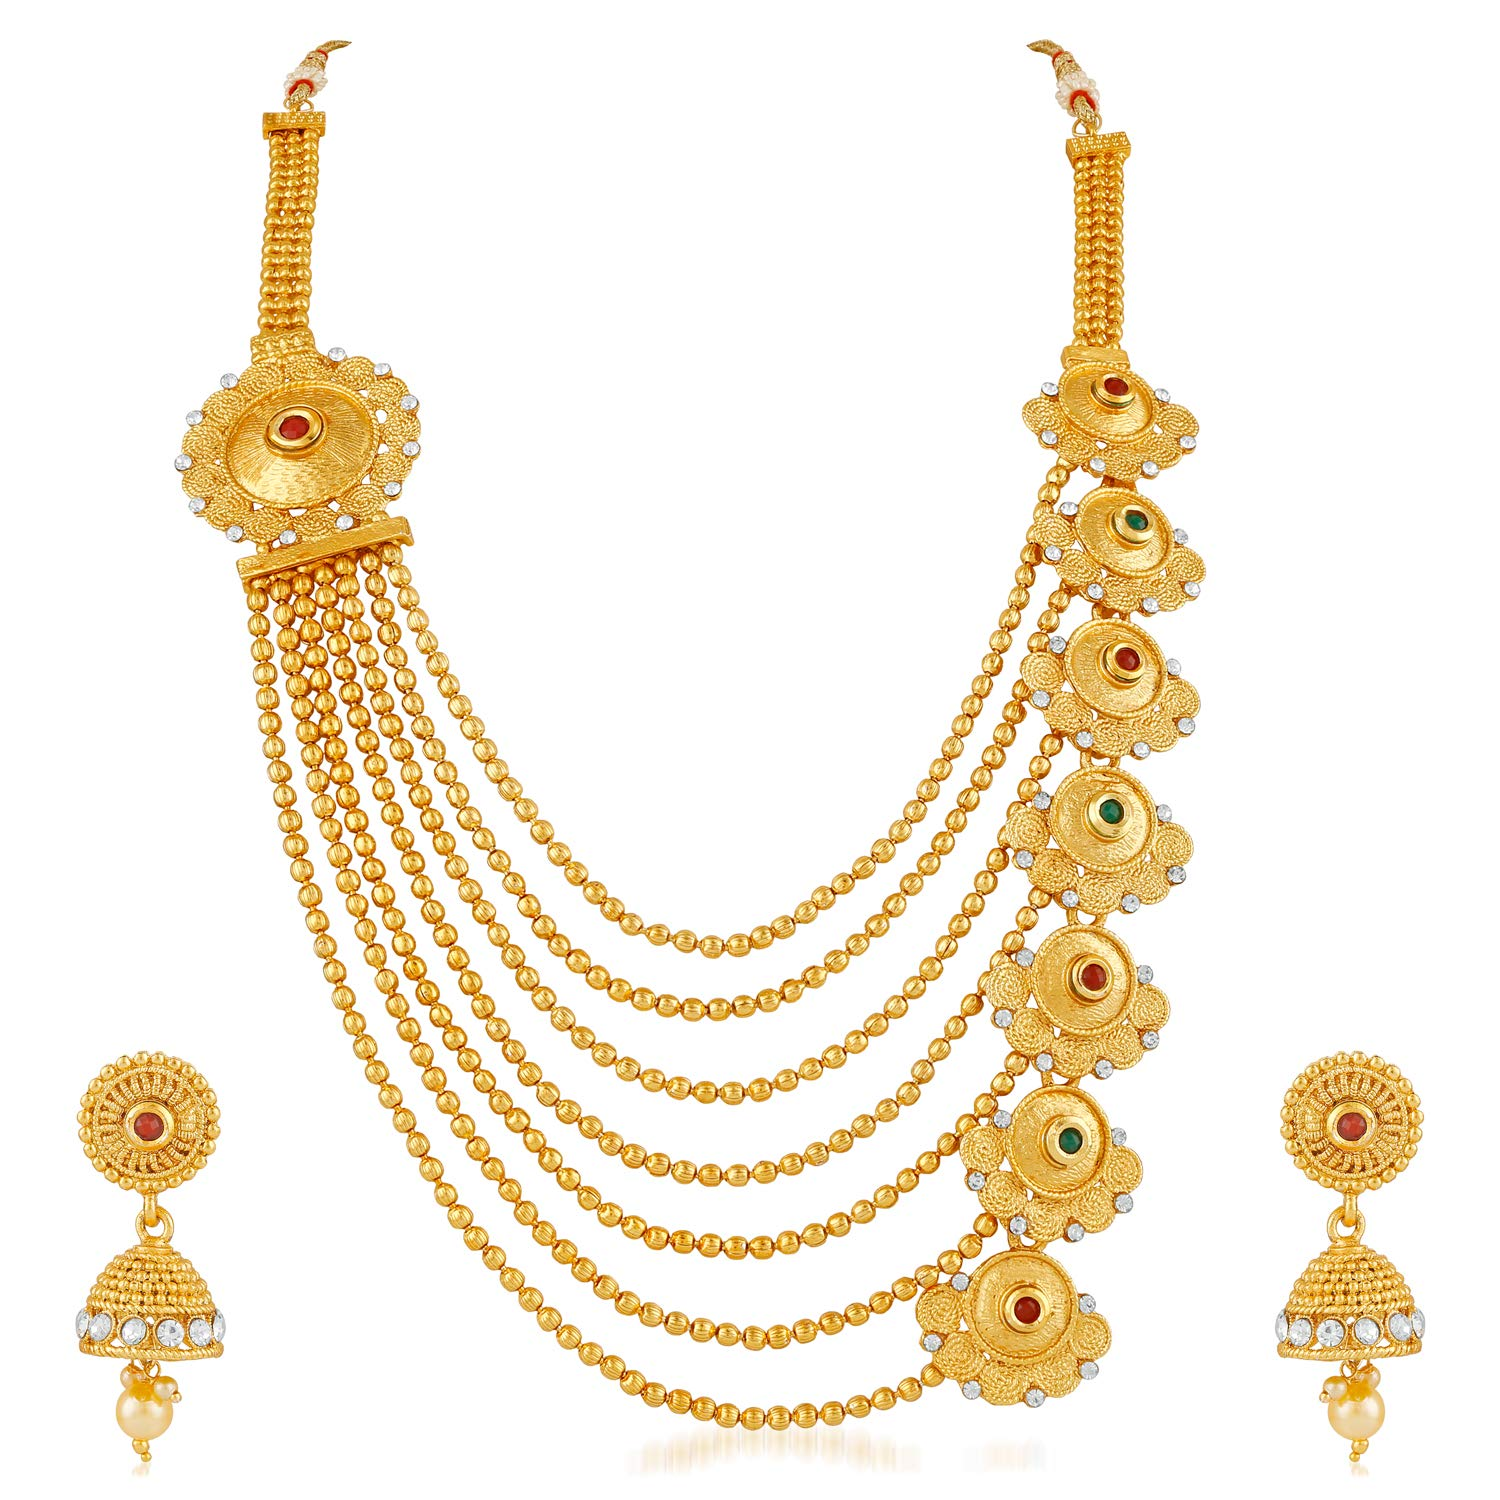 ef7af2a0dc4 Apara Traditional Gold Plated Multistrand Ball Chain Mala Earring ...